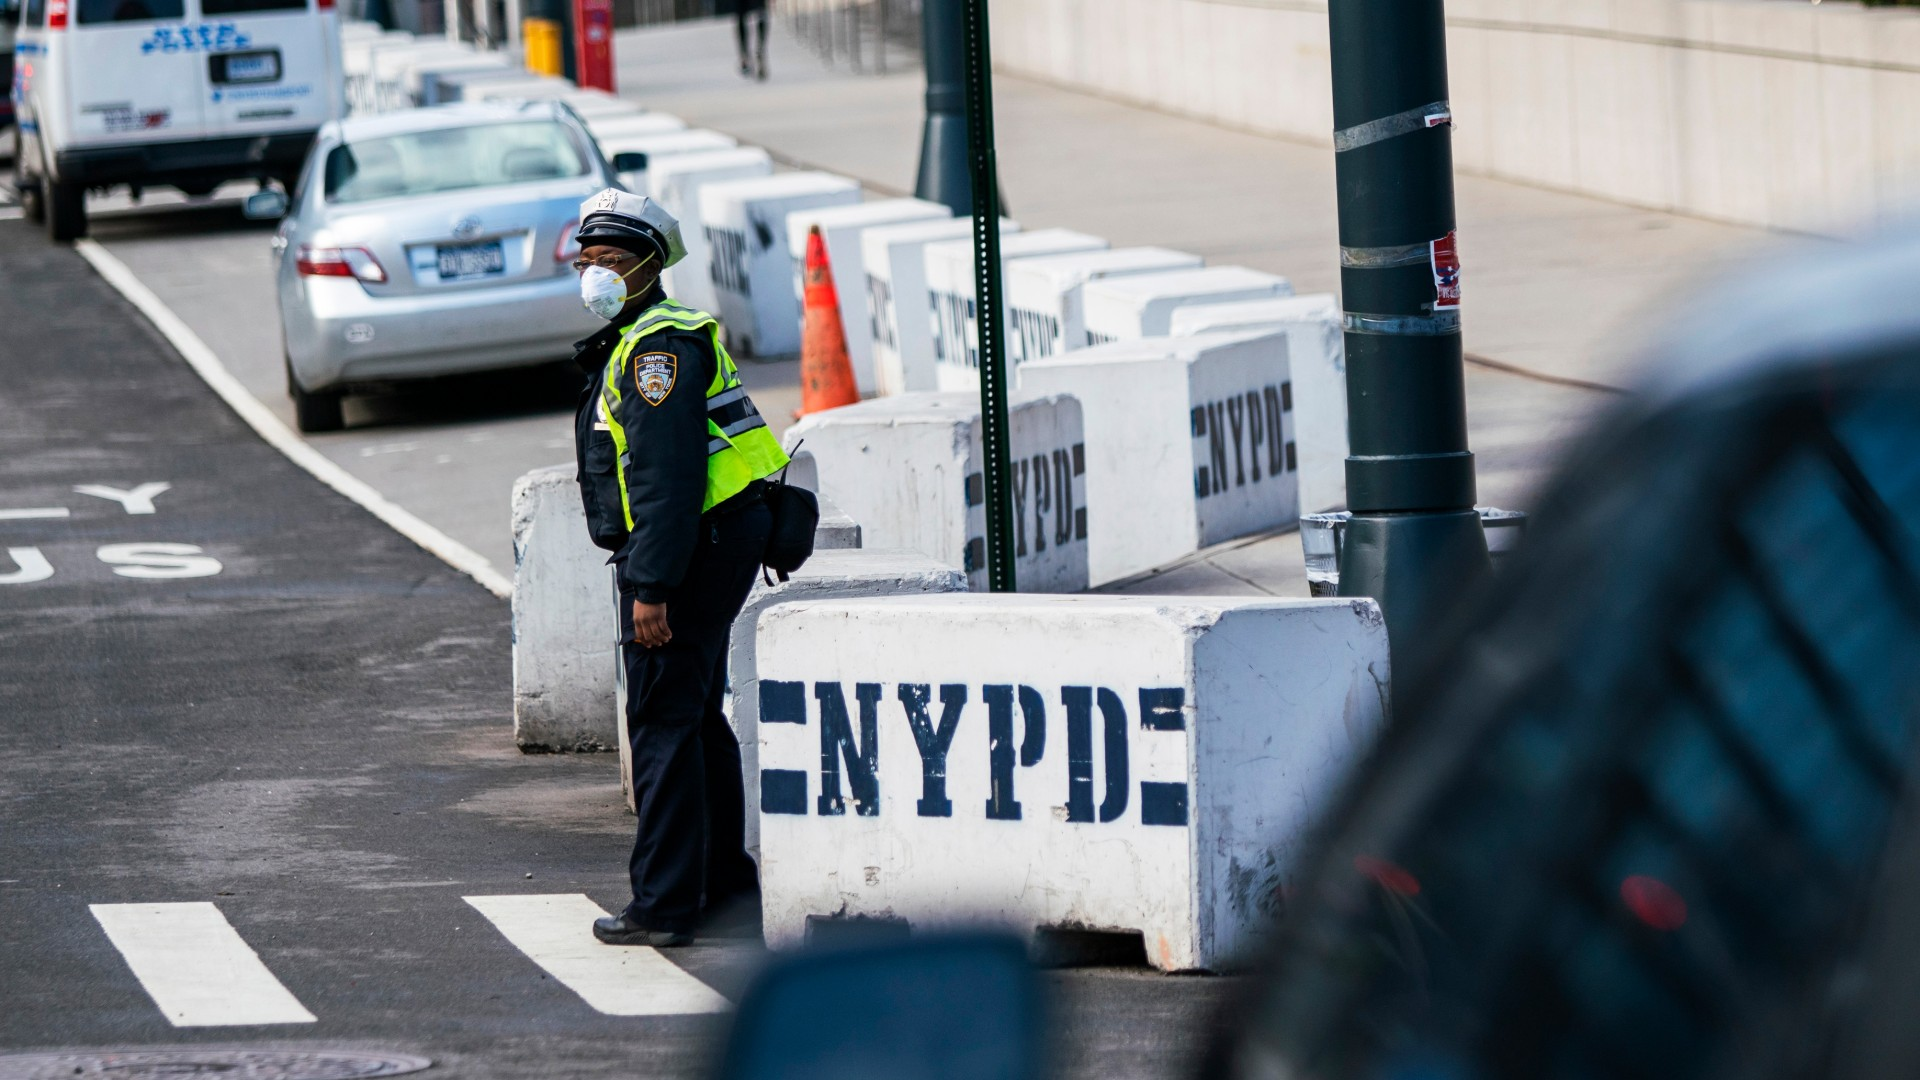 A New York Police officer wears a face mask as he directs traffic on a local street on March 27, 2020 in New York City. At least 350 members of the New York City Police Department including deputy commissioner John Miller were confirmed to have the virus. (Eduardo Munoz Alvarez/Getty Images)